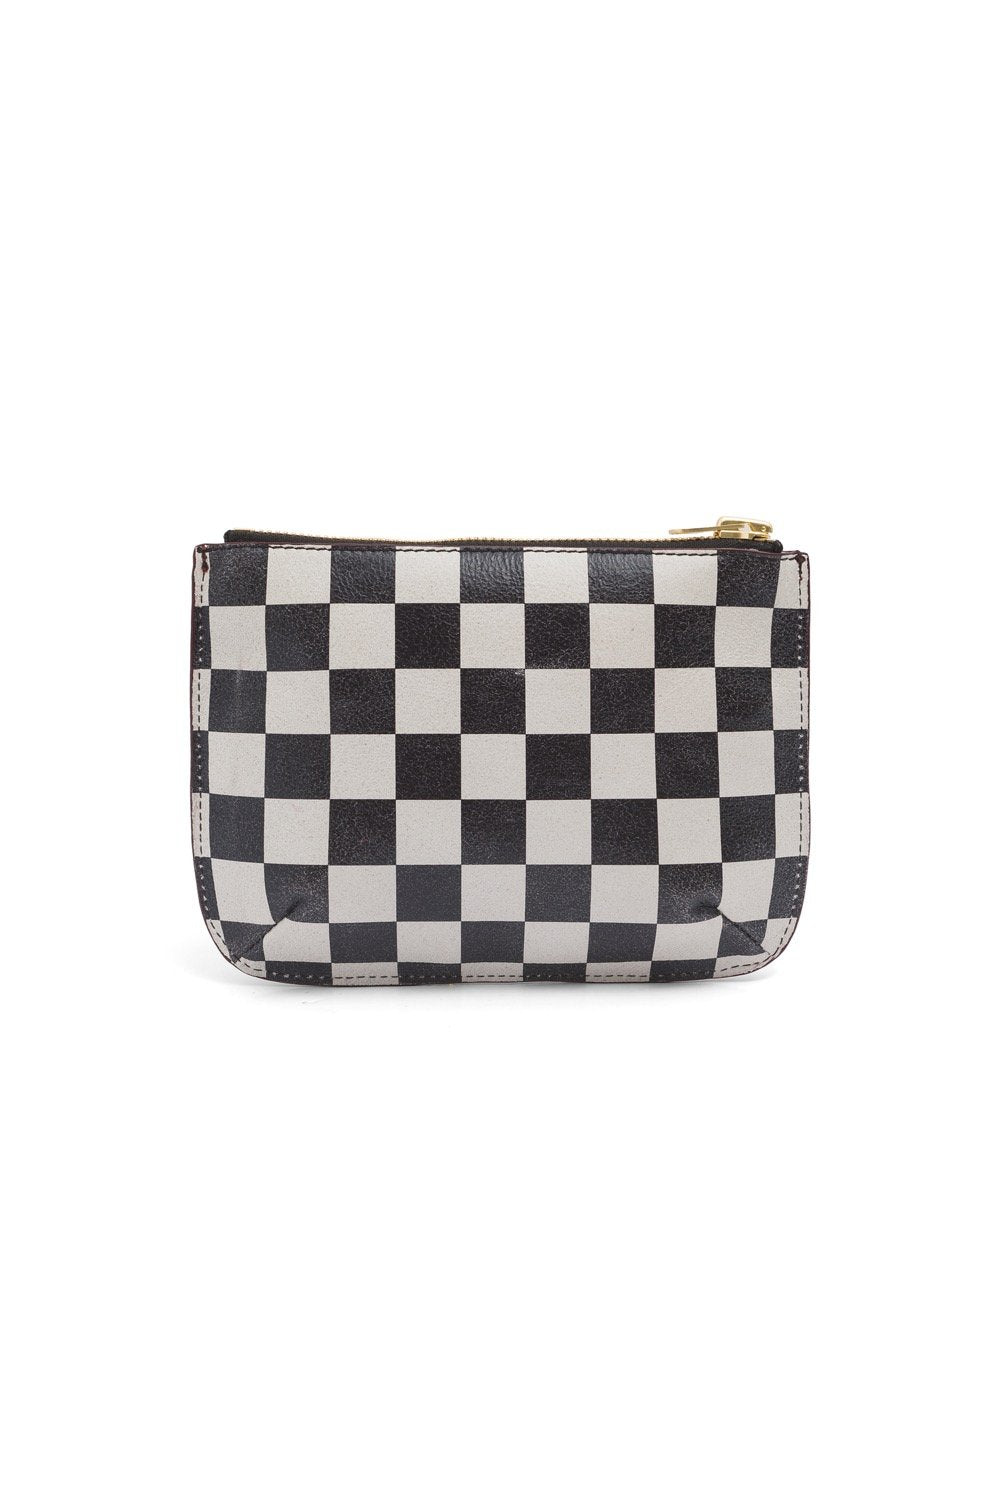 Pouch in checkered leather & plum suede